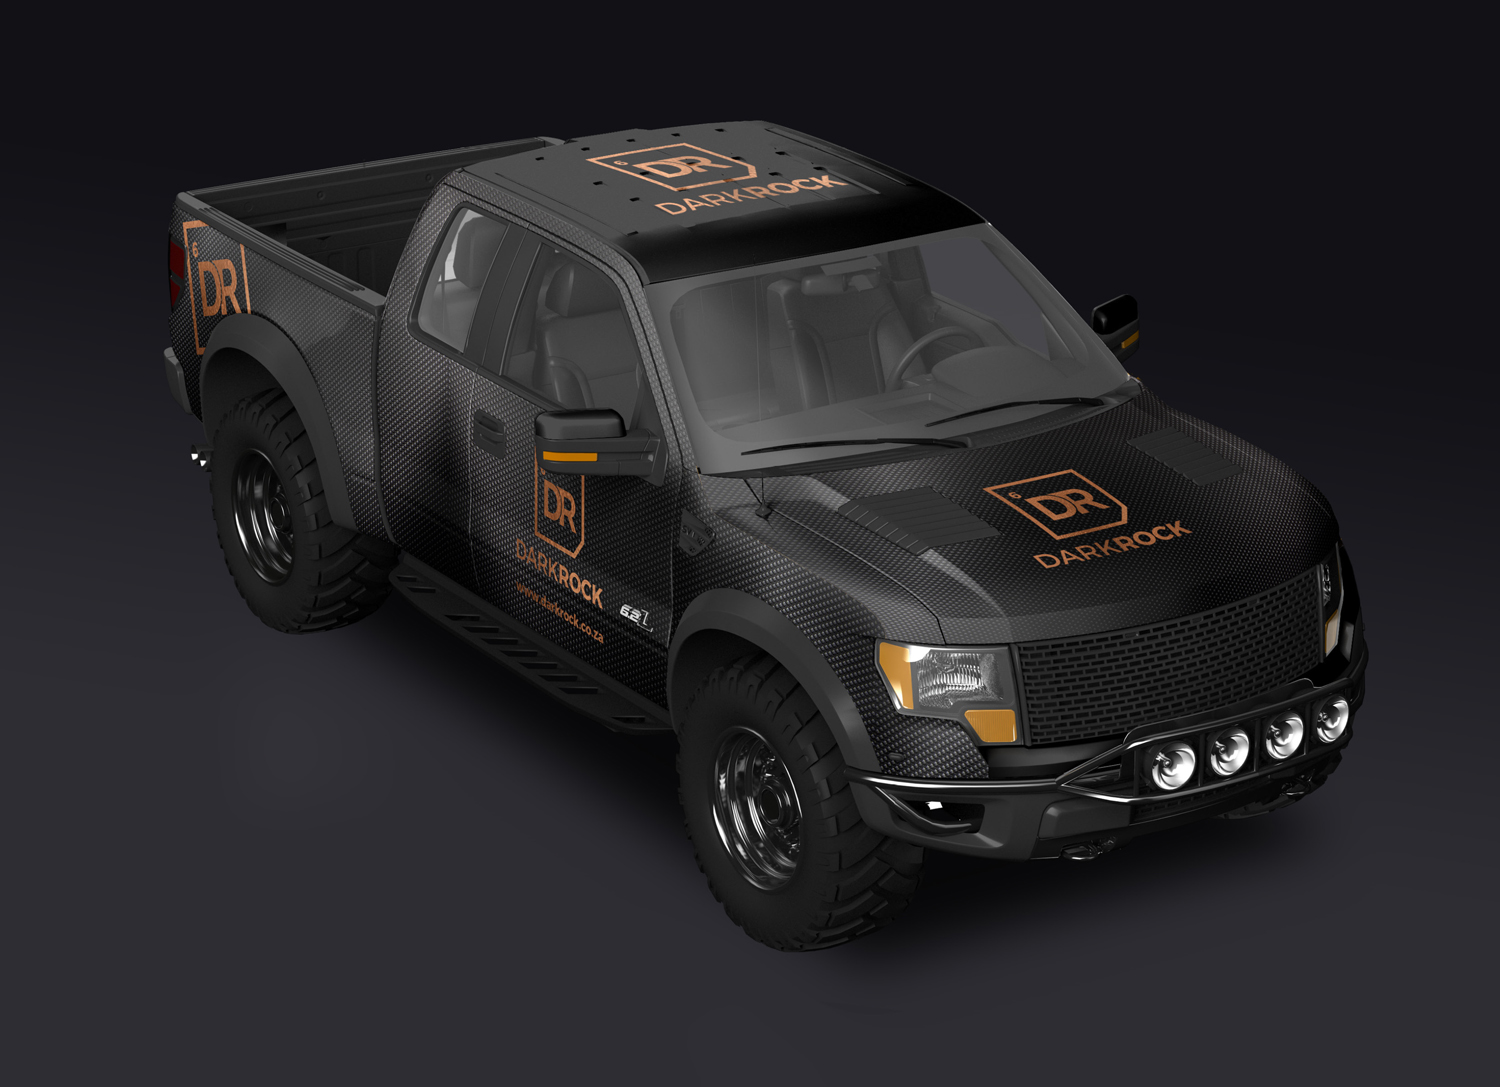 Dark Rock Car Wrap Vynil Graphic Design by Agent Orange South Africa